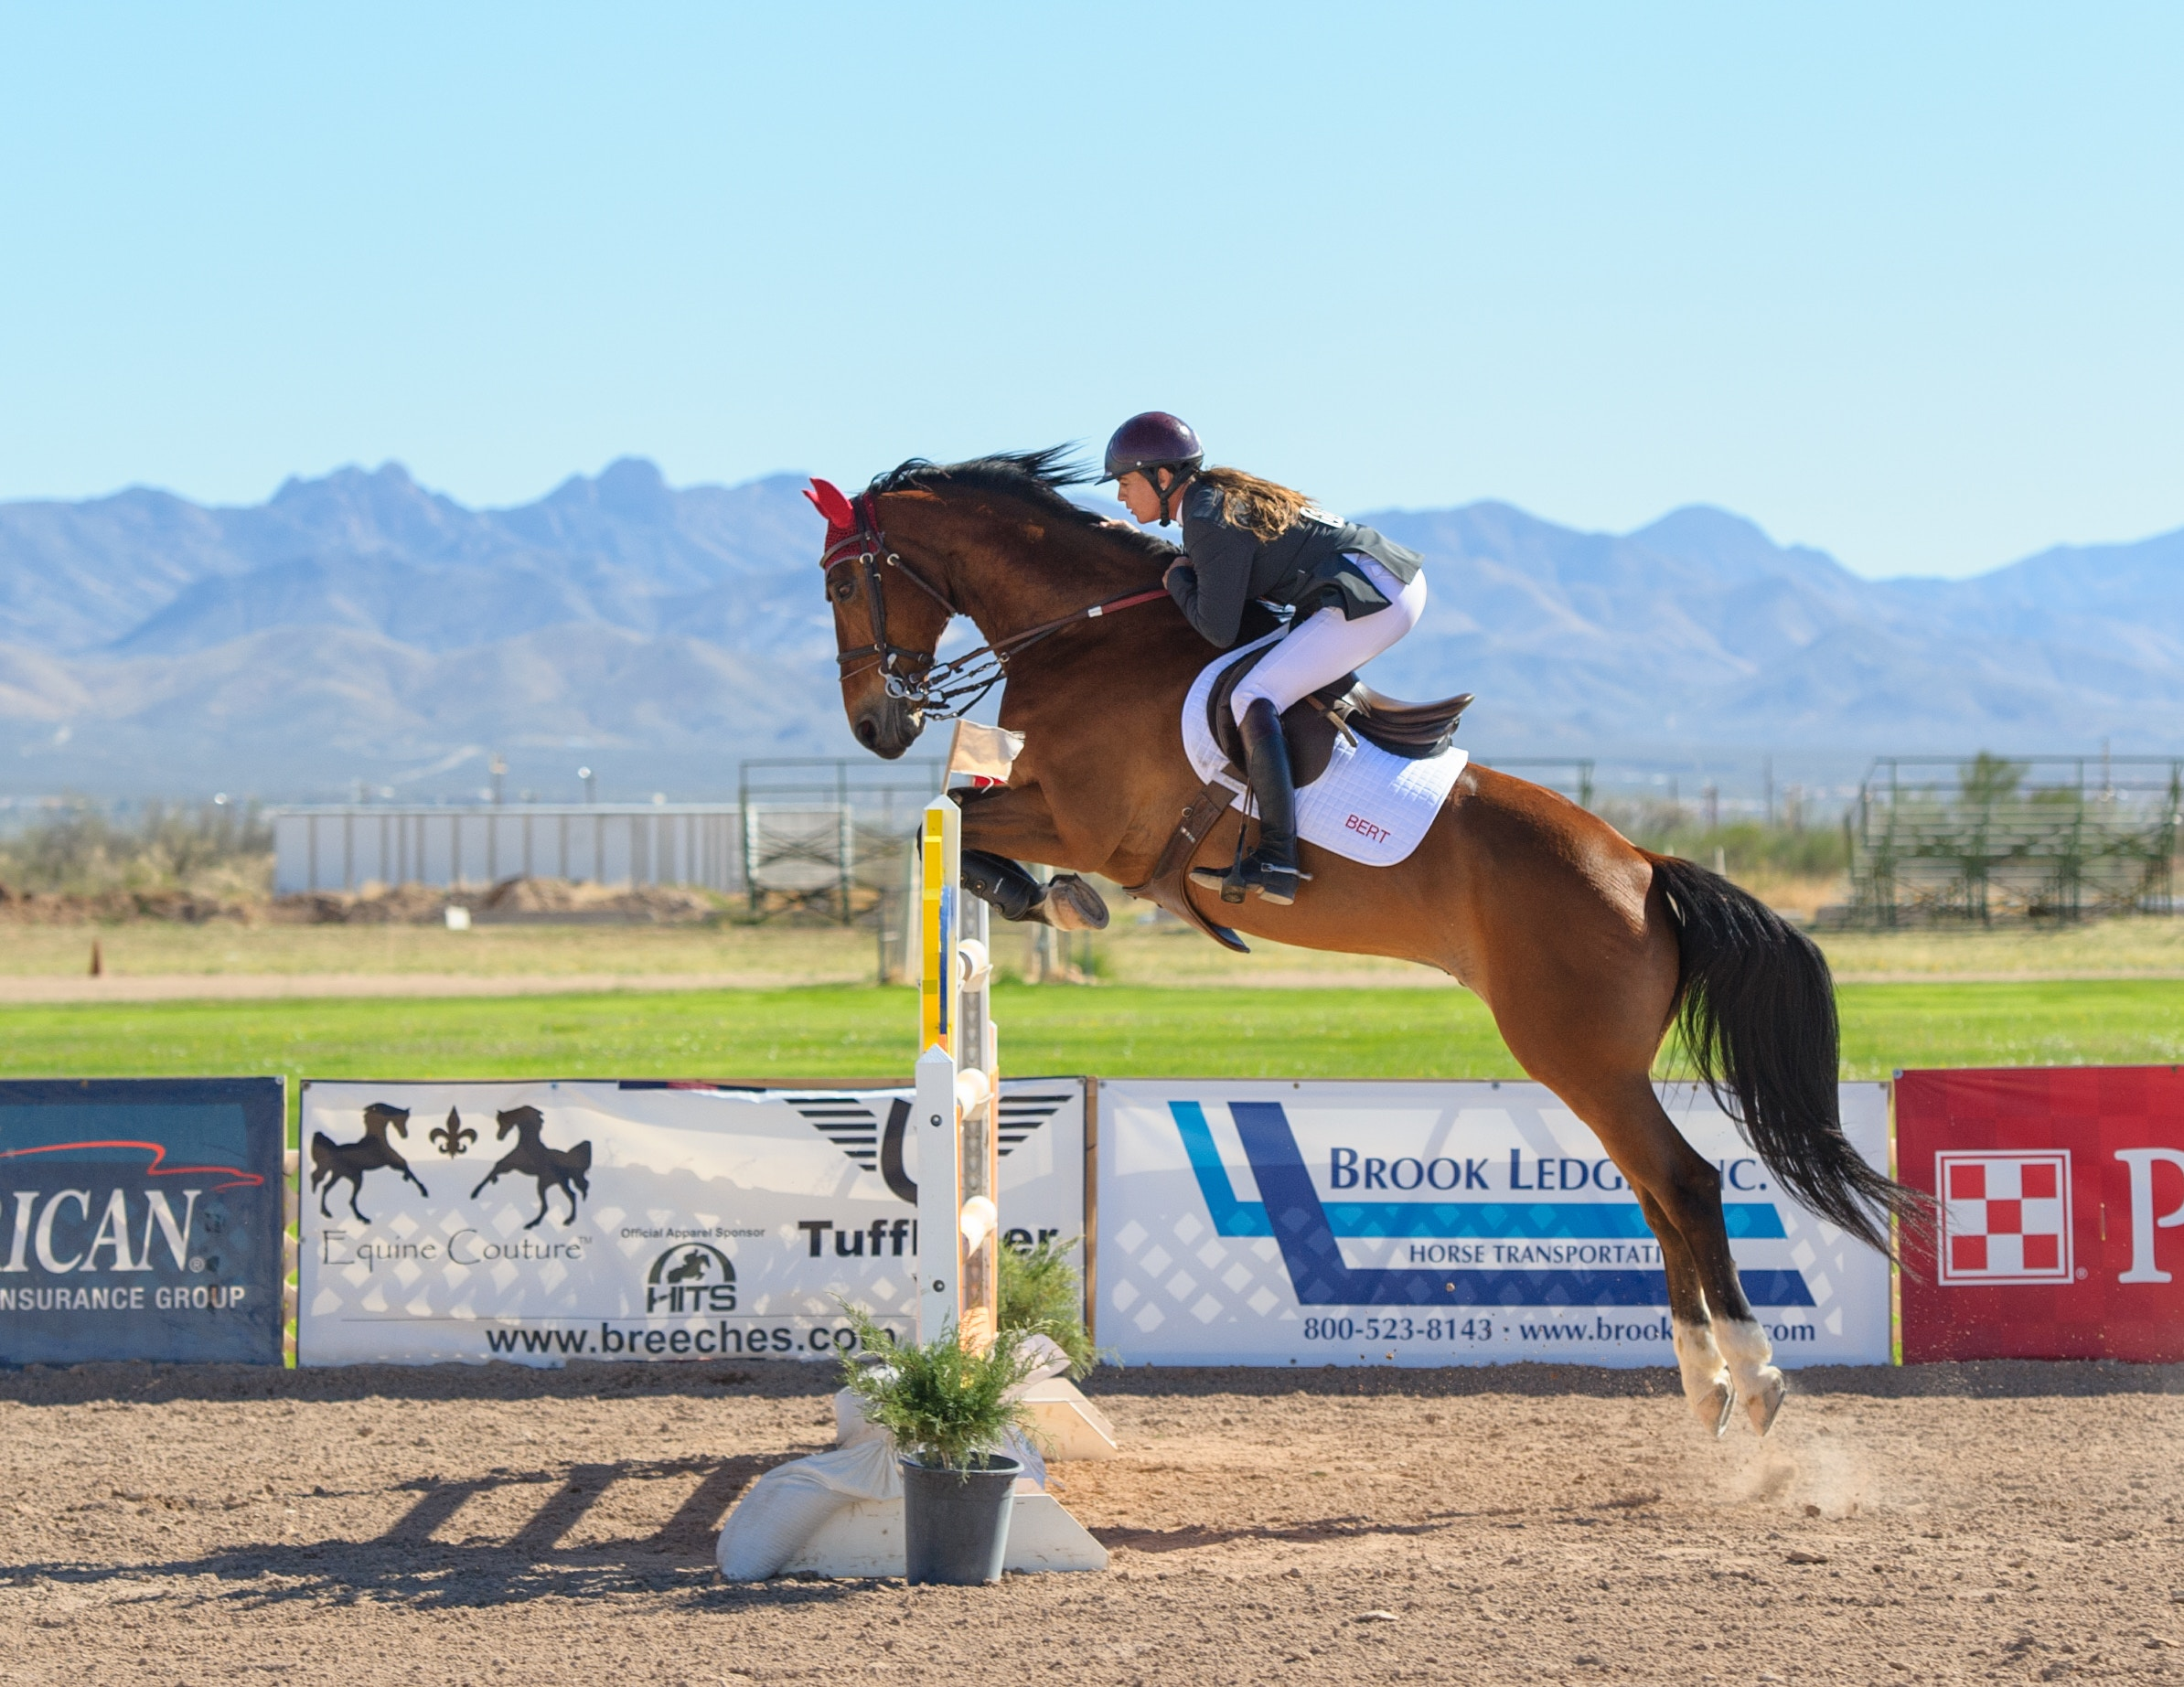 Show Jumping Rider in Competition on Medium Brown Horse